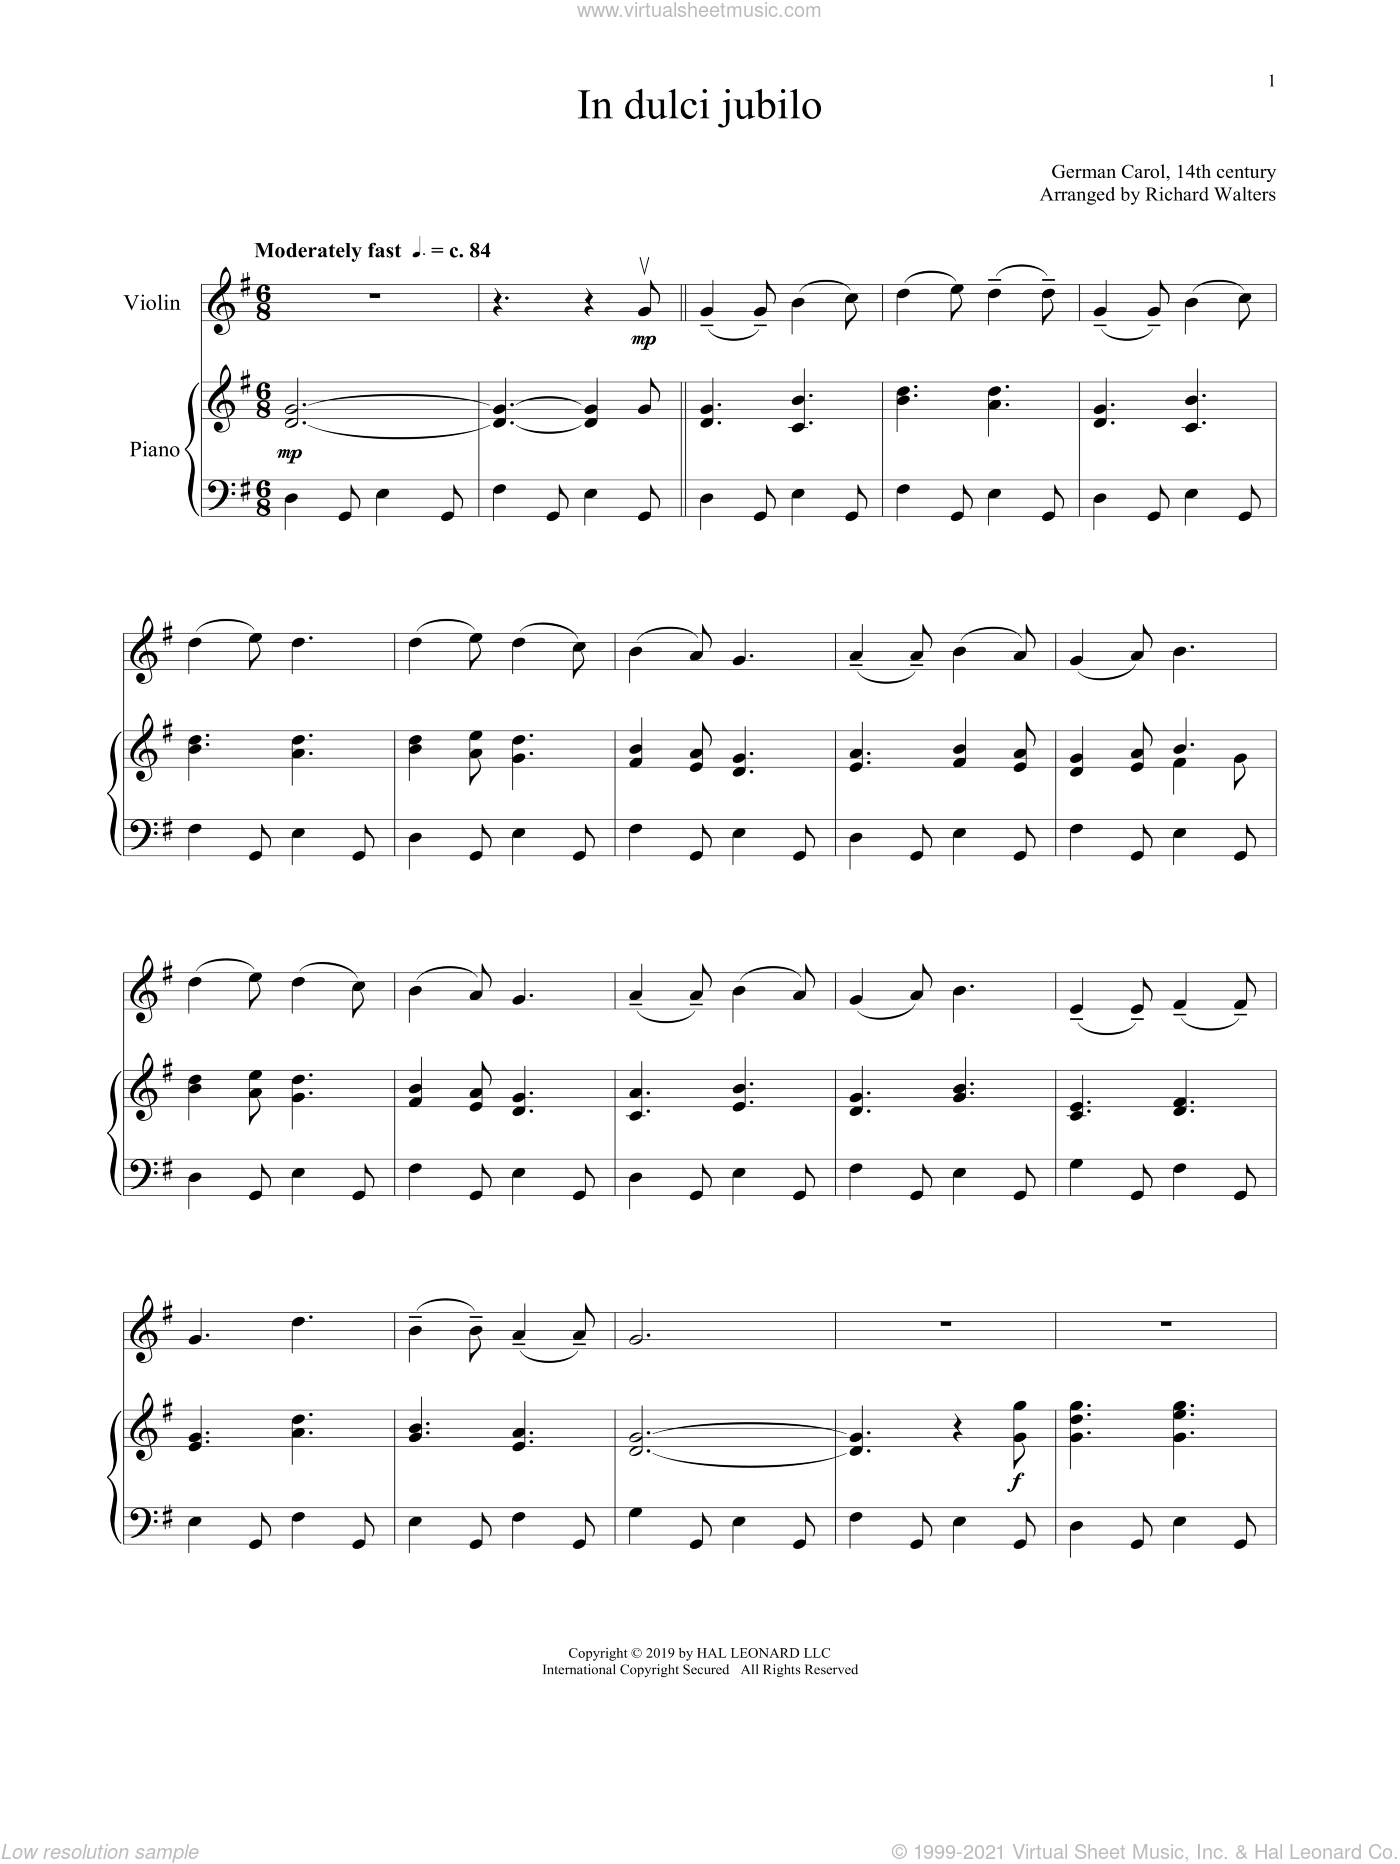 In Dulci Jubilo sheet music for violin and piano  and 14th Century German Melody, intermediate skill level